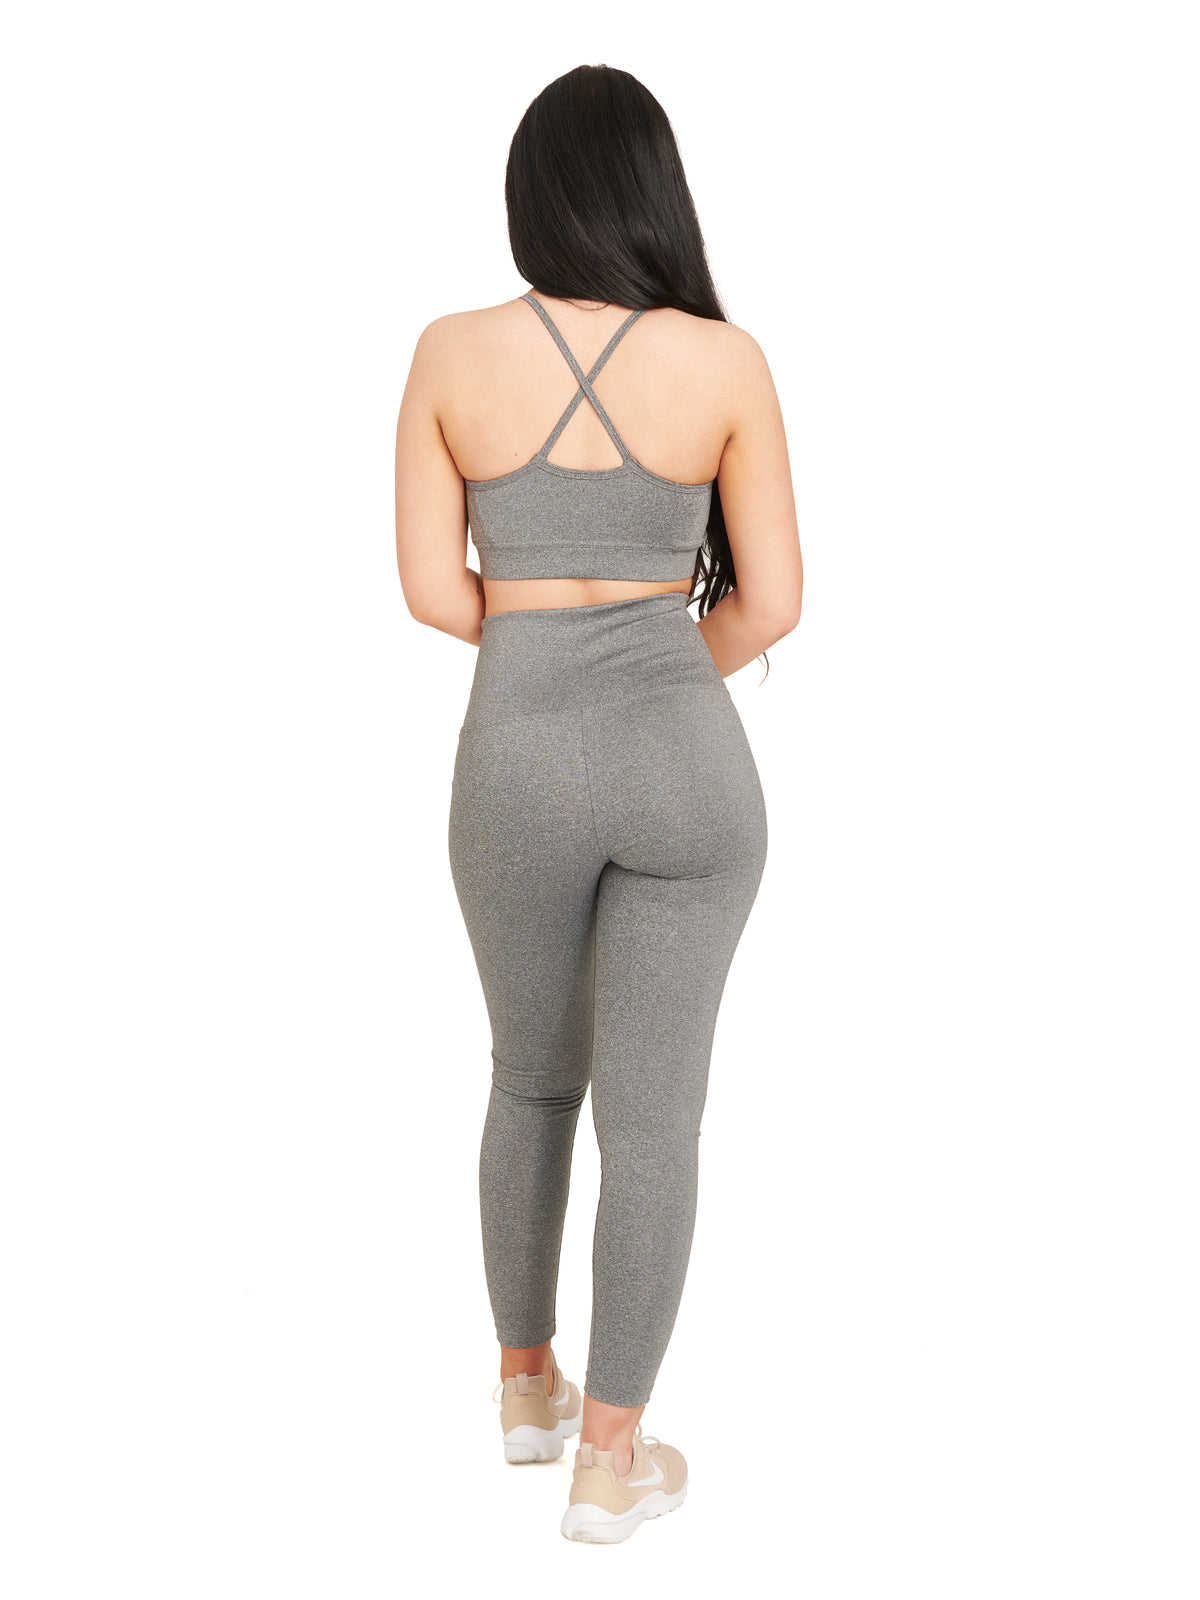 Deity Sports Bra / Grey